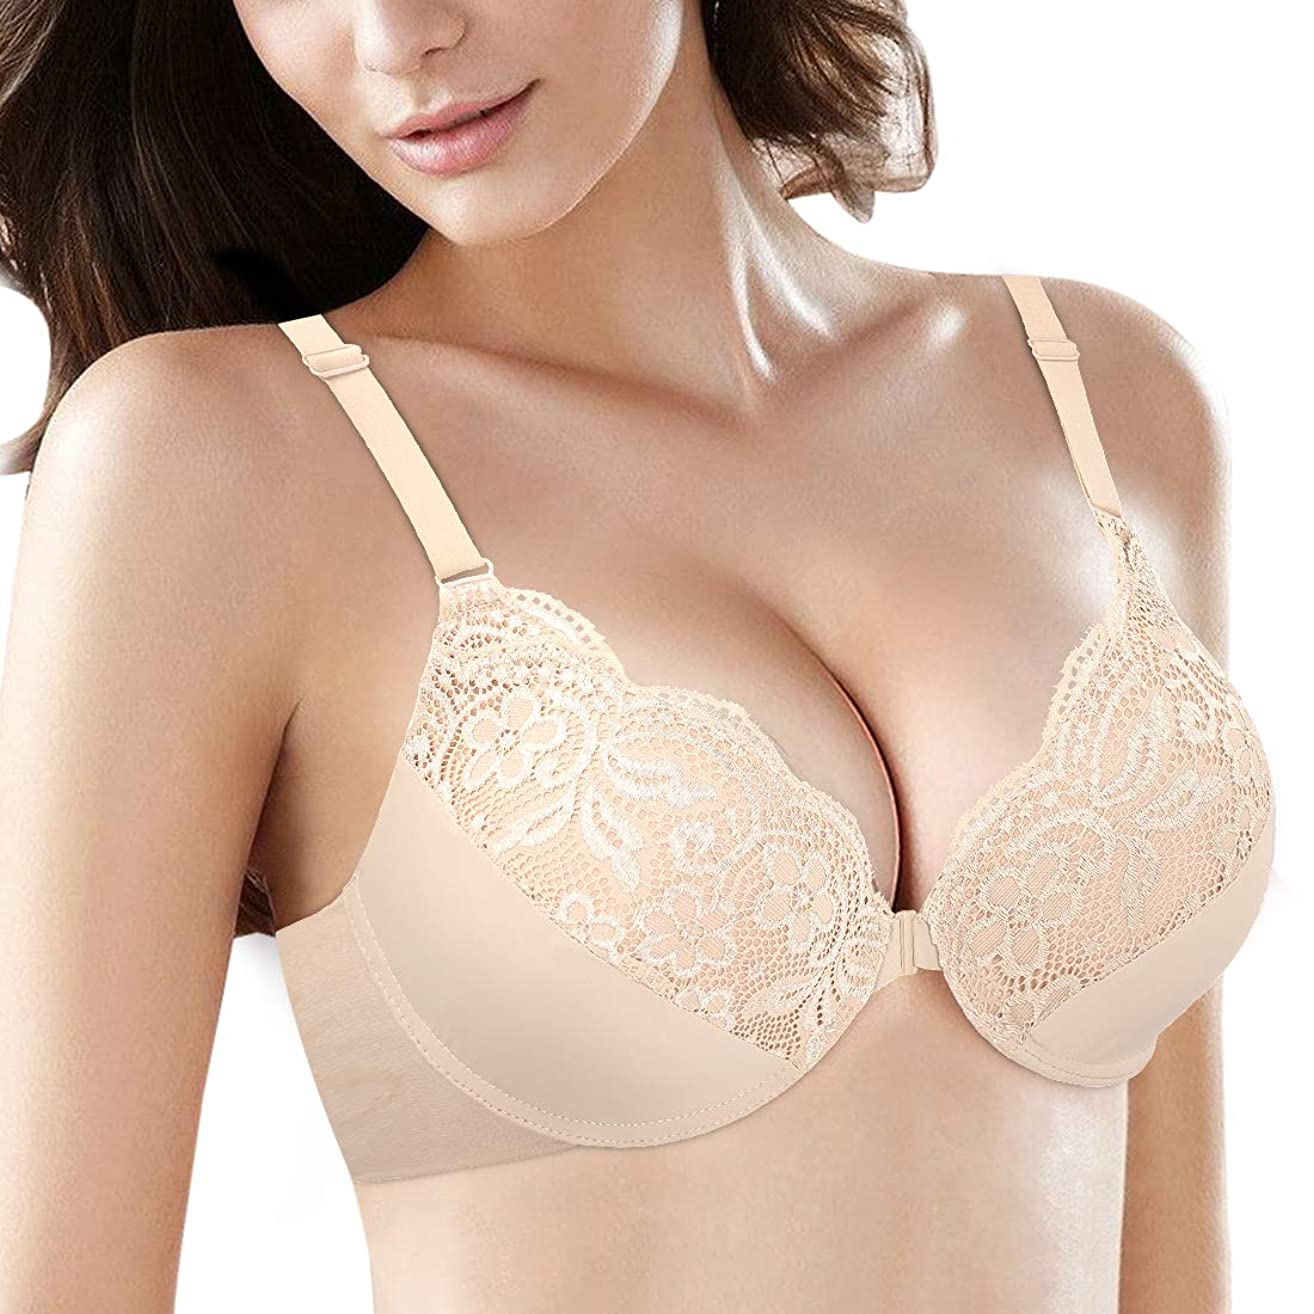 38C-46DDD Women's Plus Size Front Closure Bra Support Underwire Full Coverage Everyday Bra for DDD Cup